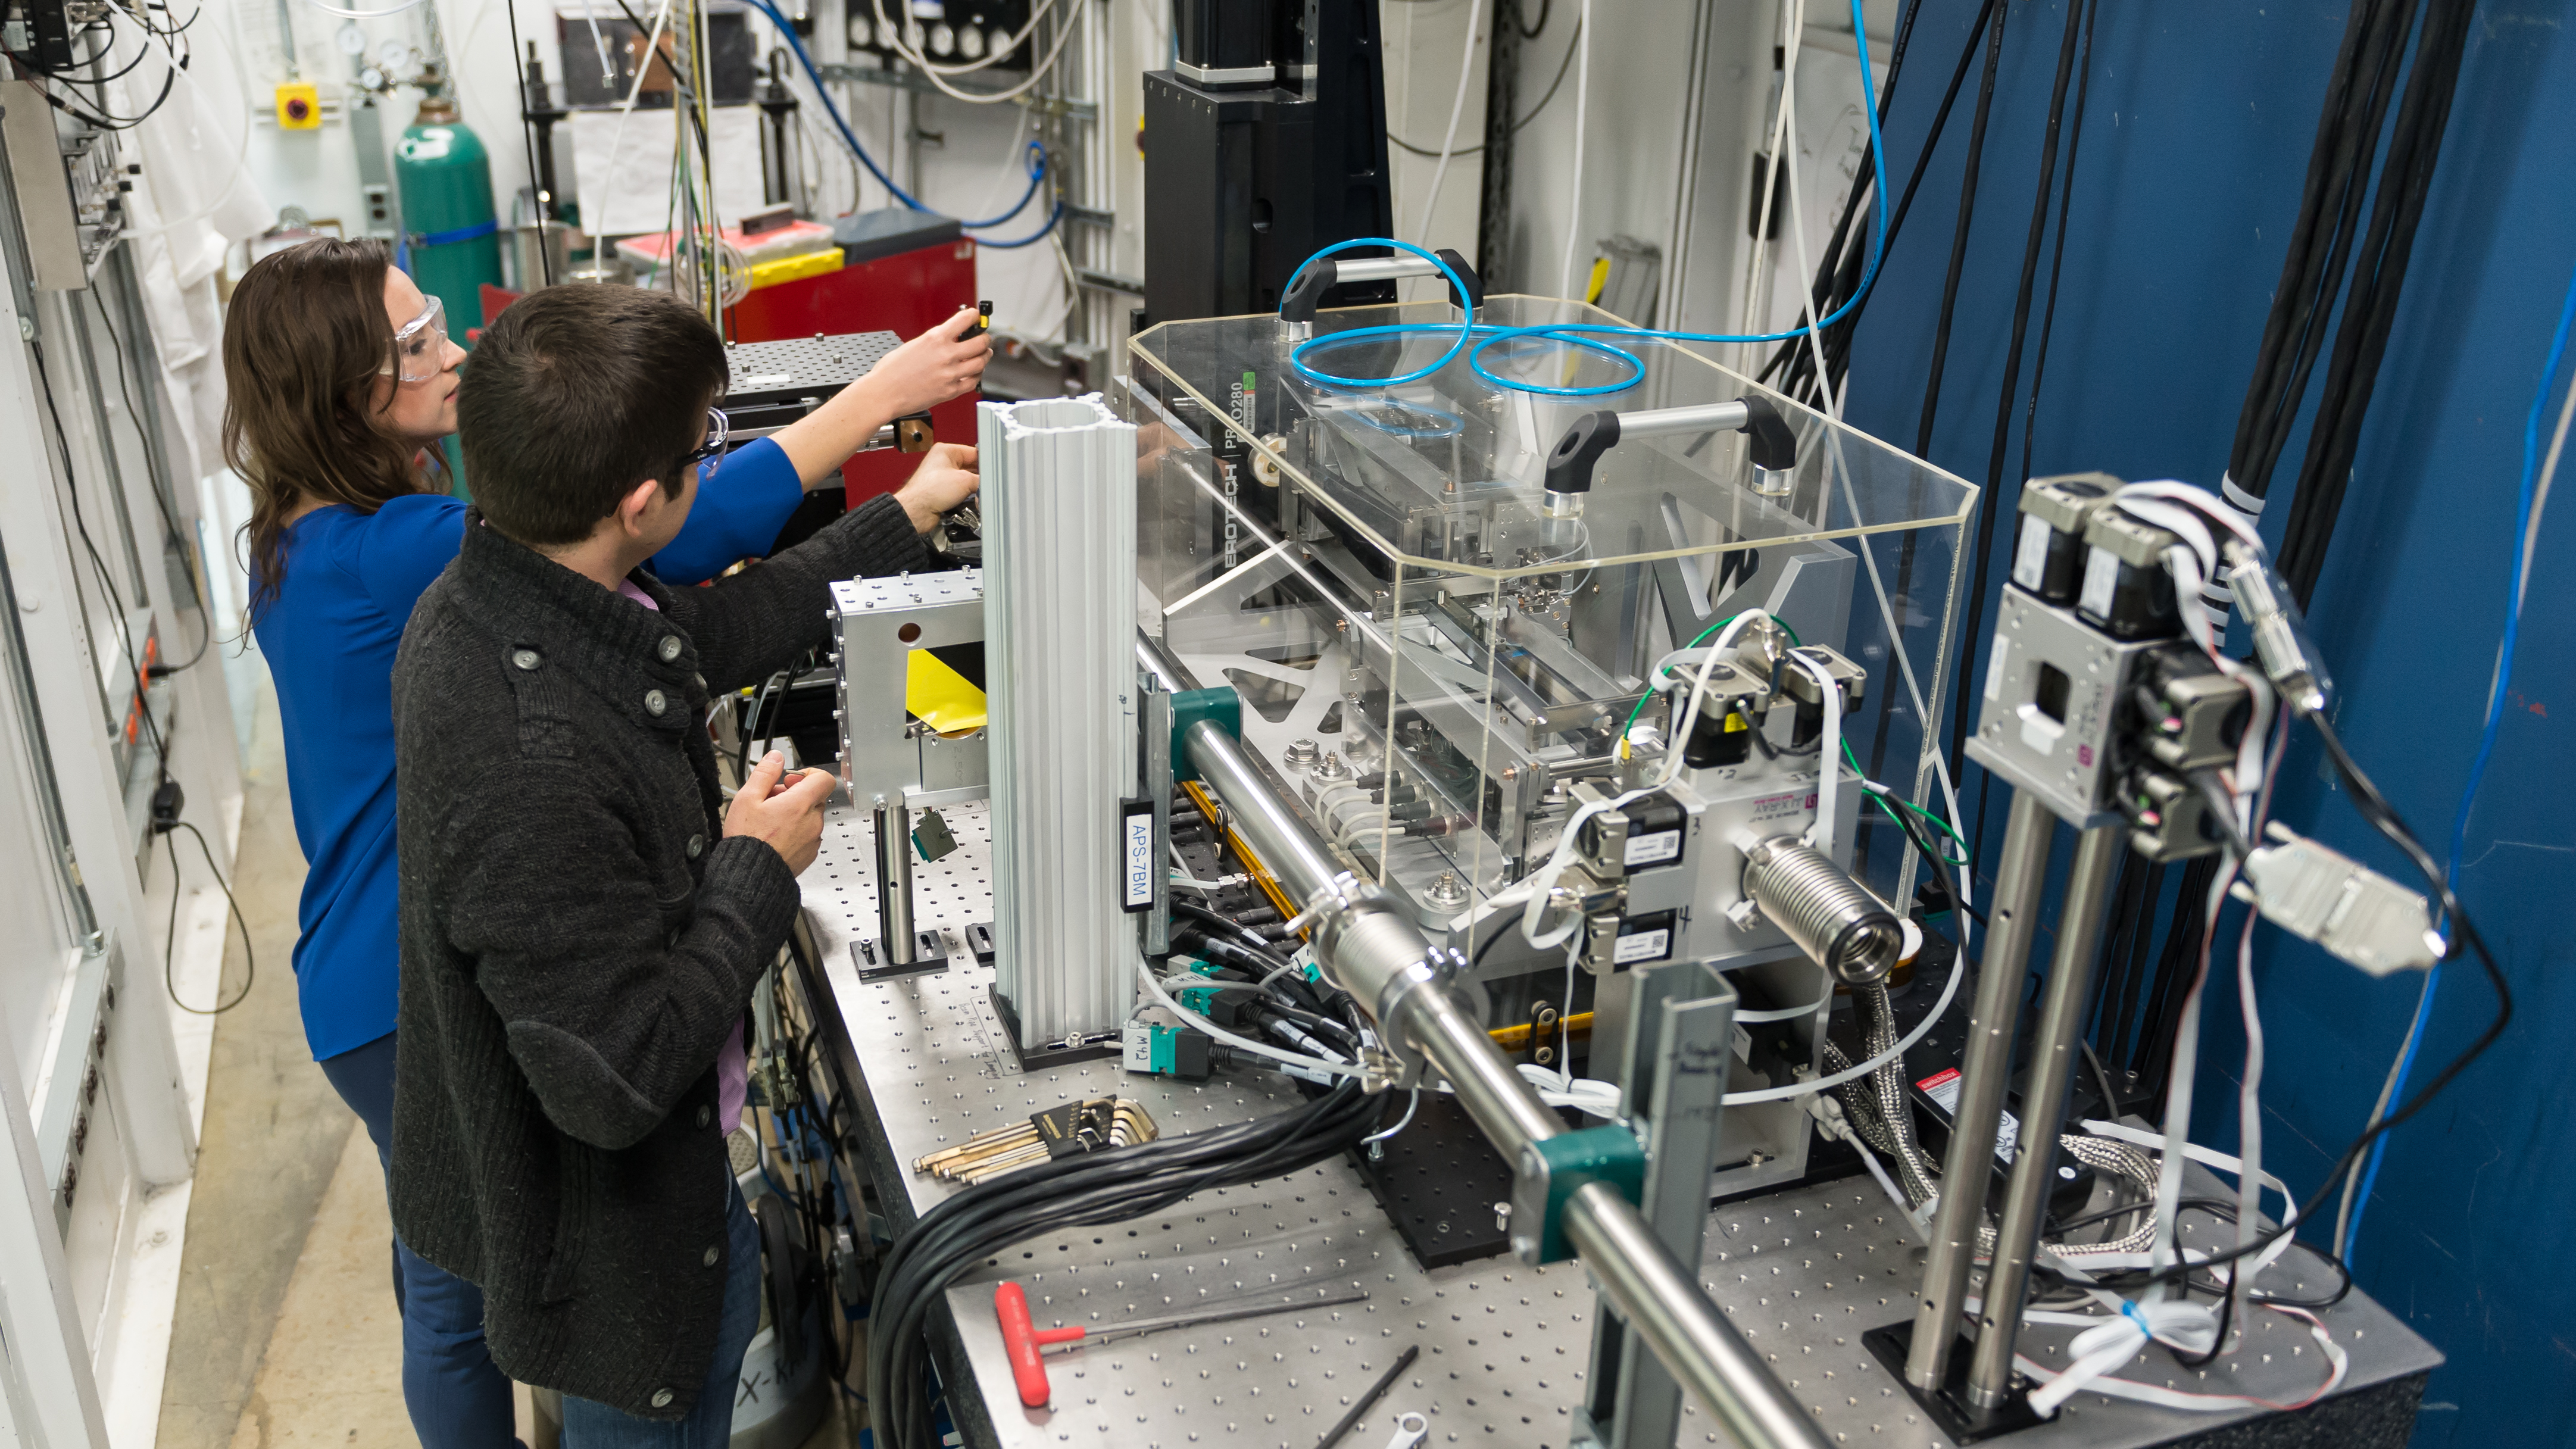 Brandon Sforzo and a former colleague prepare an experiment to investigate fuel injector design at the Advanced Photon Source.